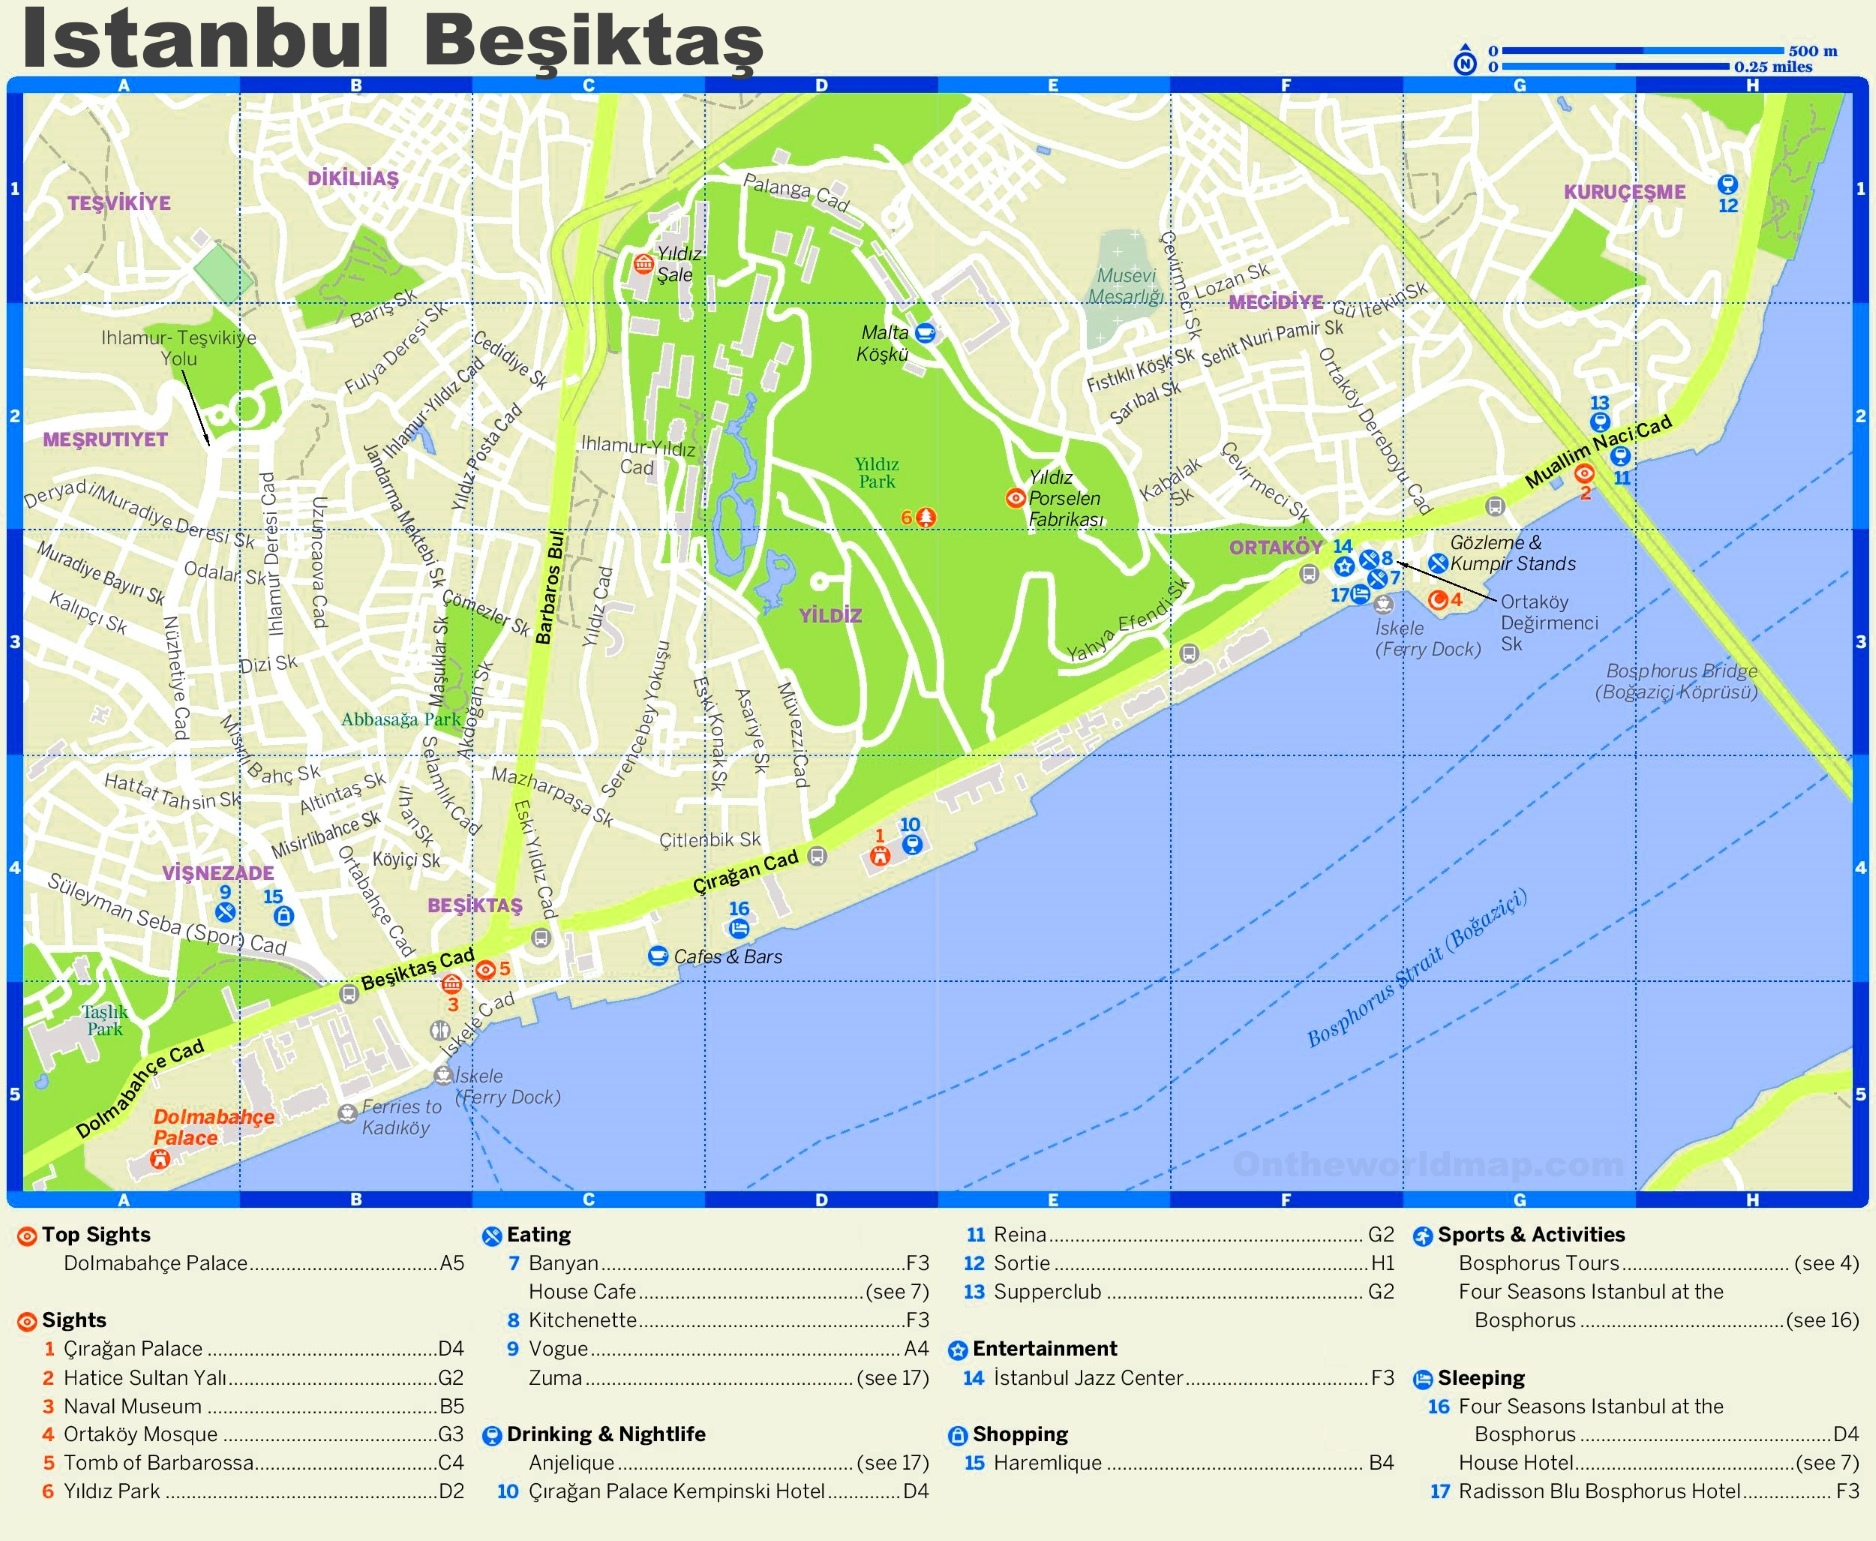 Beikta tourist map